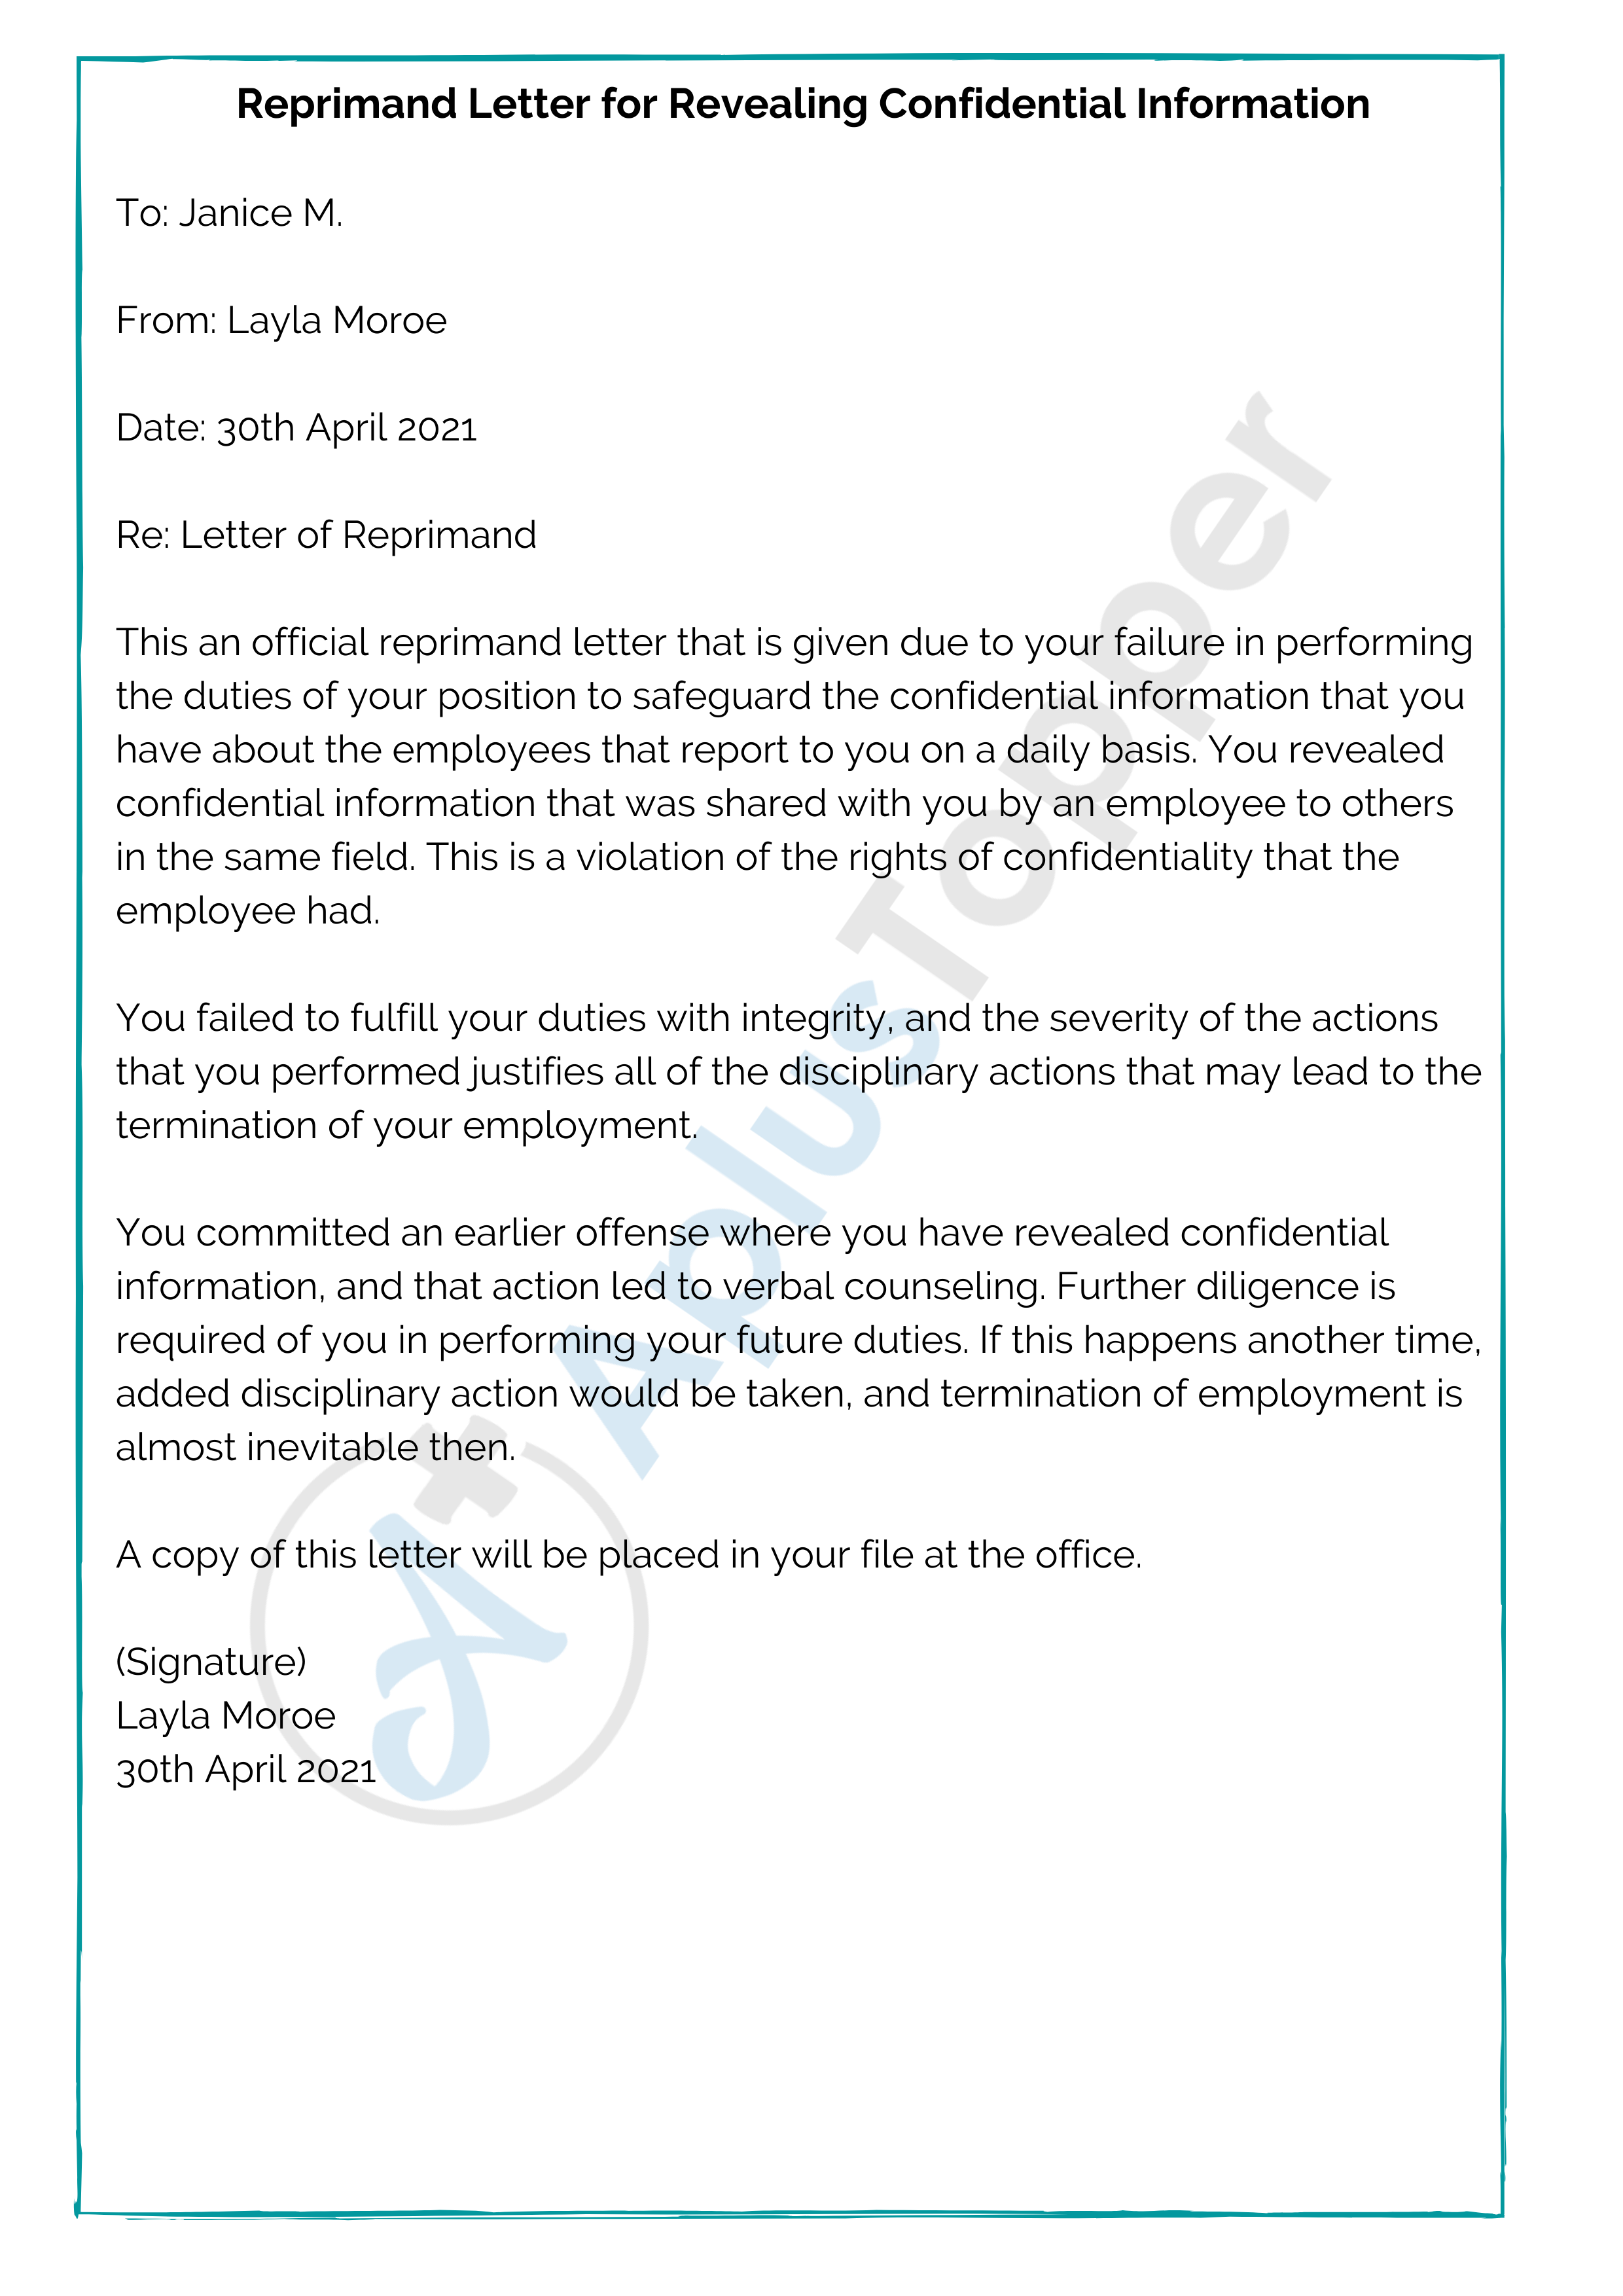 Reprimand Letter for Revealing Confidential Information